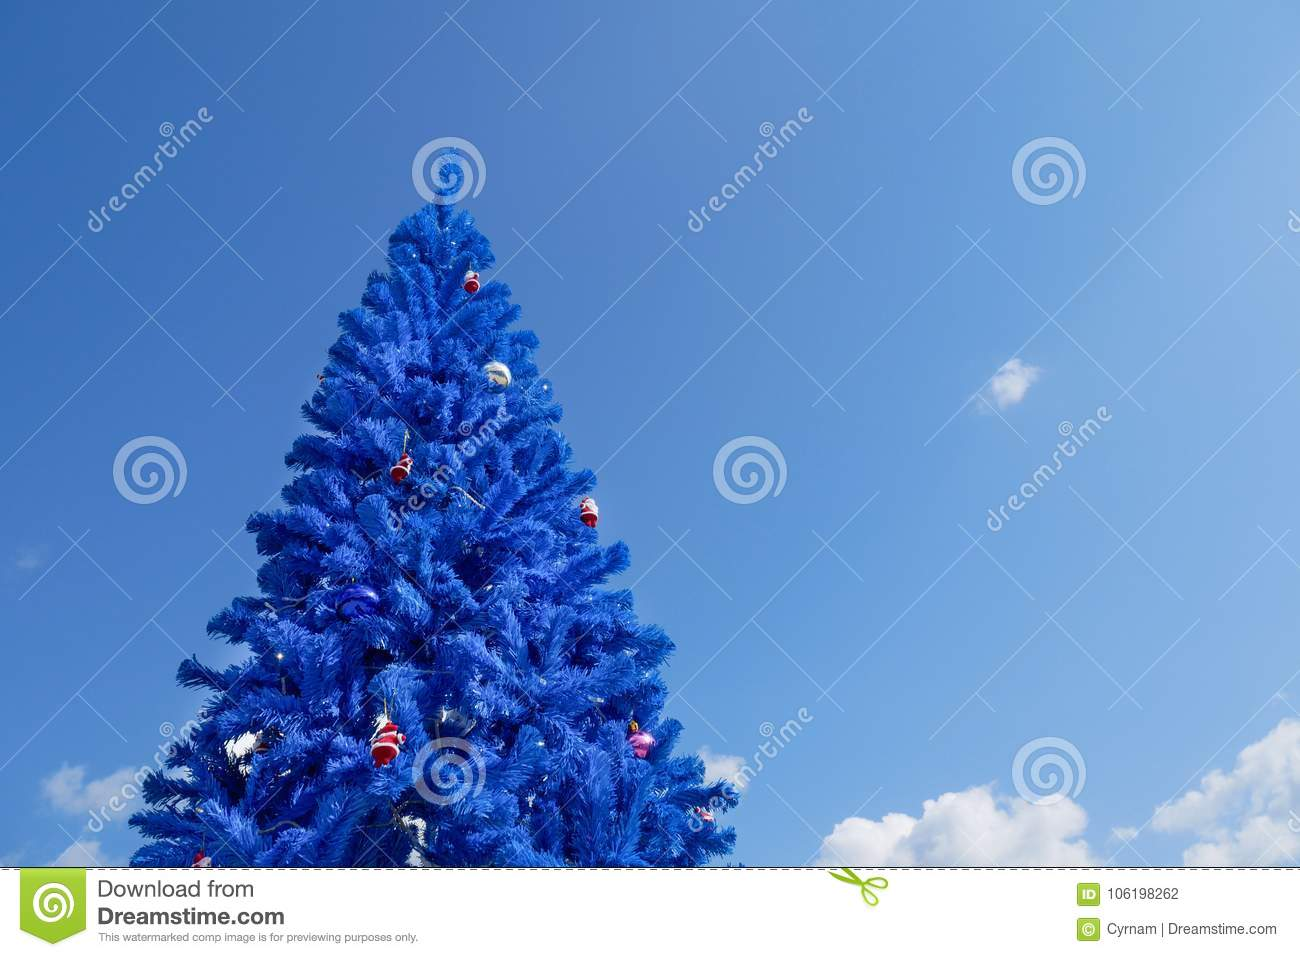 Unconventional Christmas Trees.Unconventional Blue Christmas Tree Stock Photo Image Of